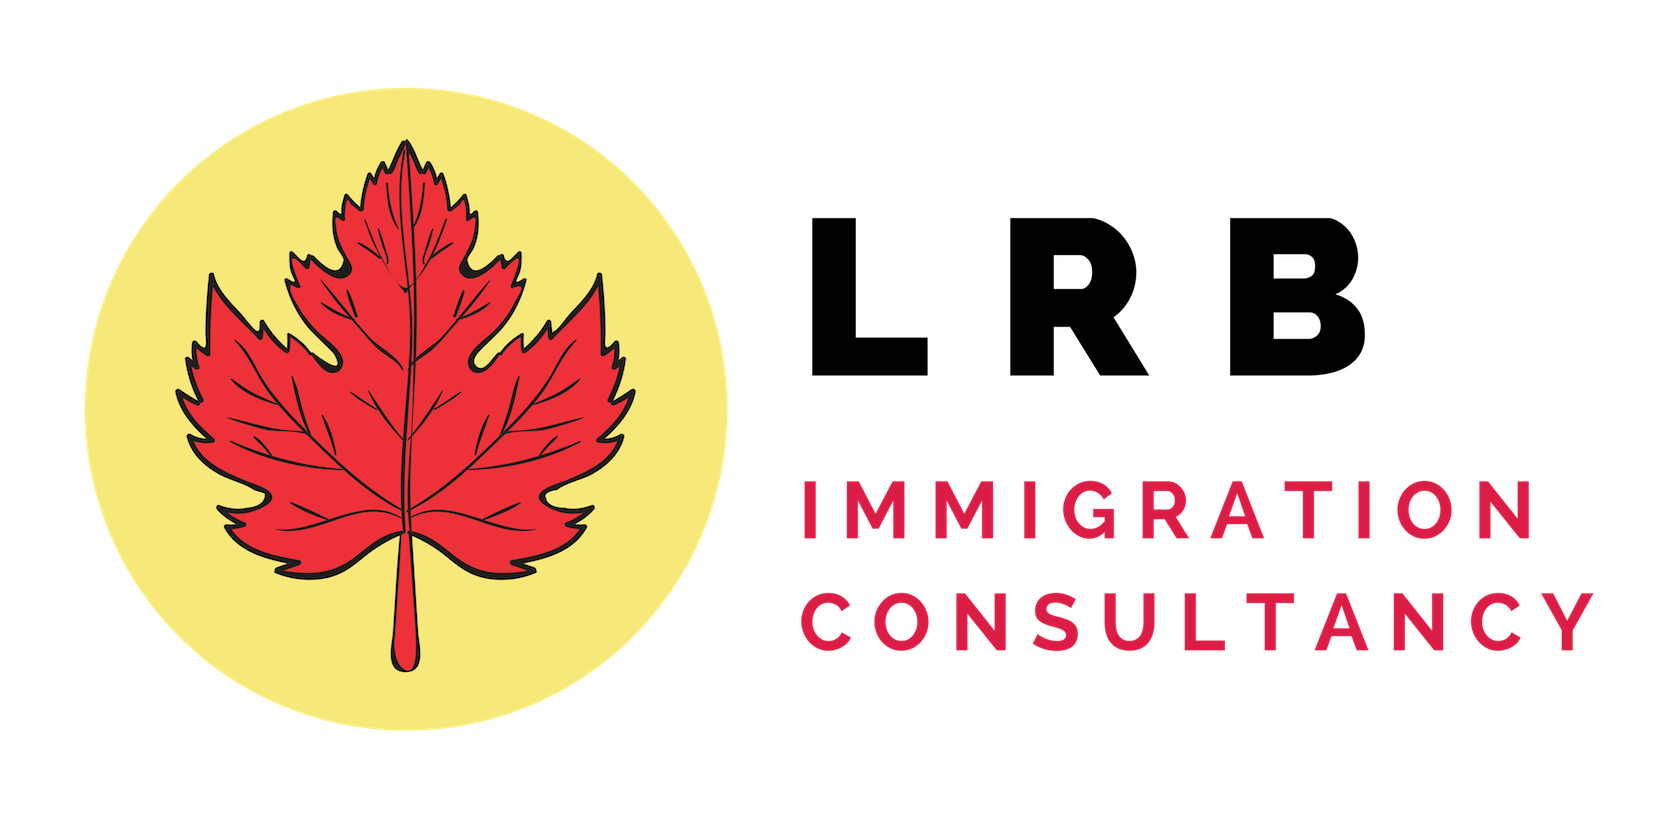 Hiring an Immigration Consultant ...